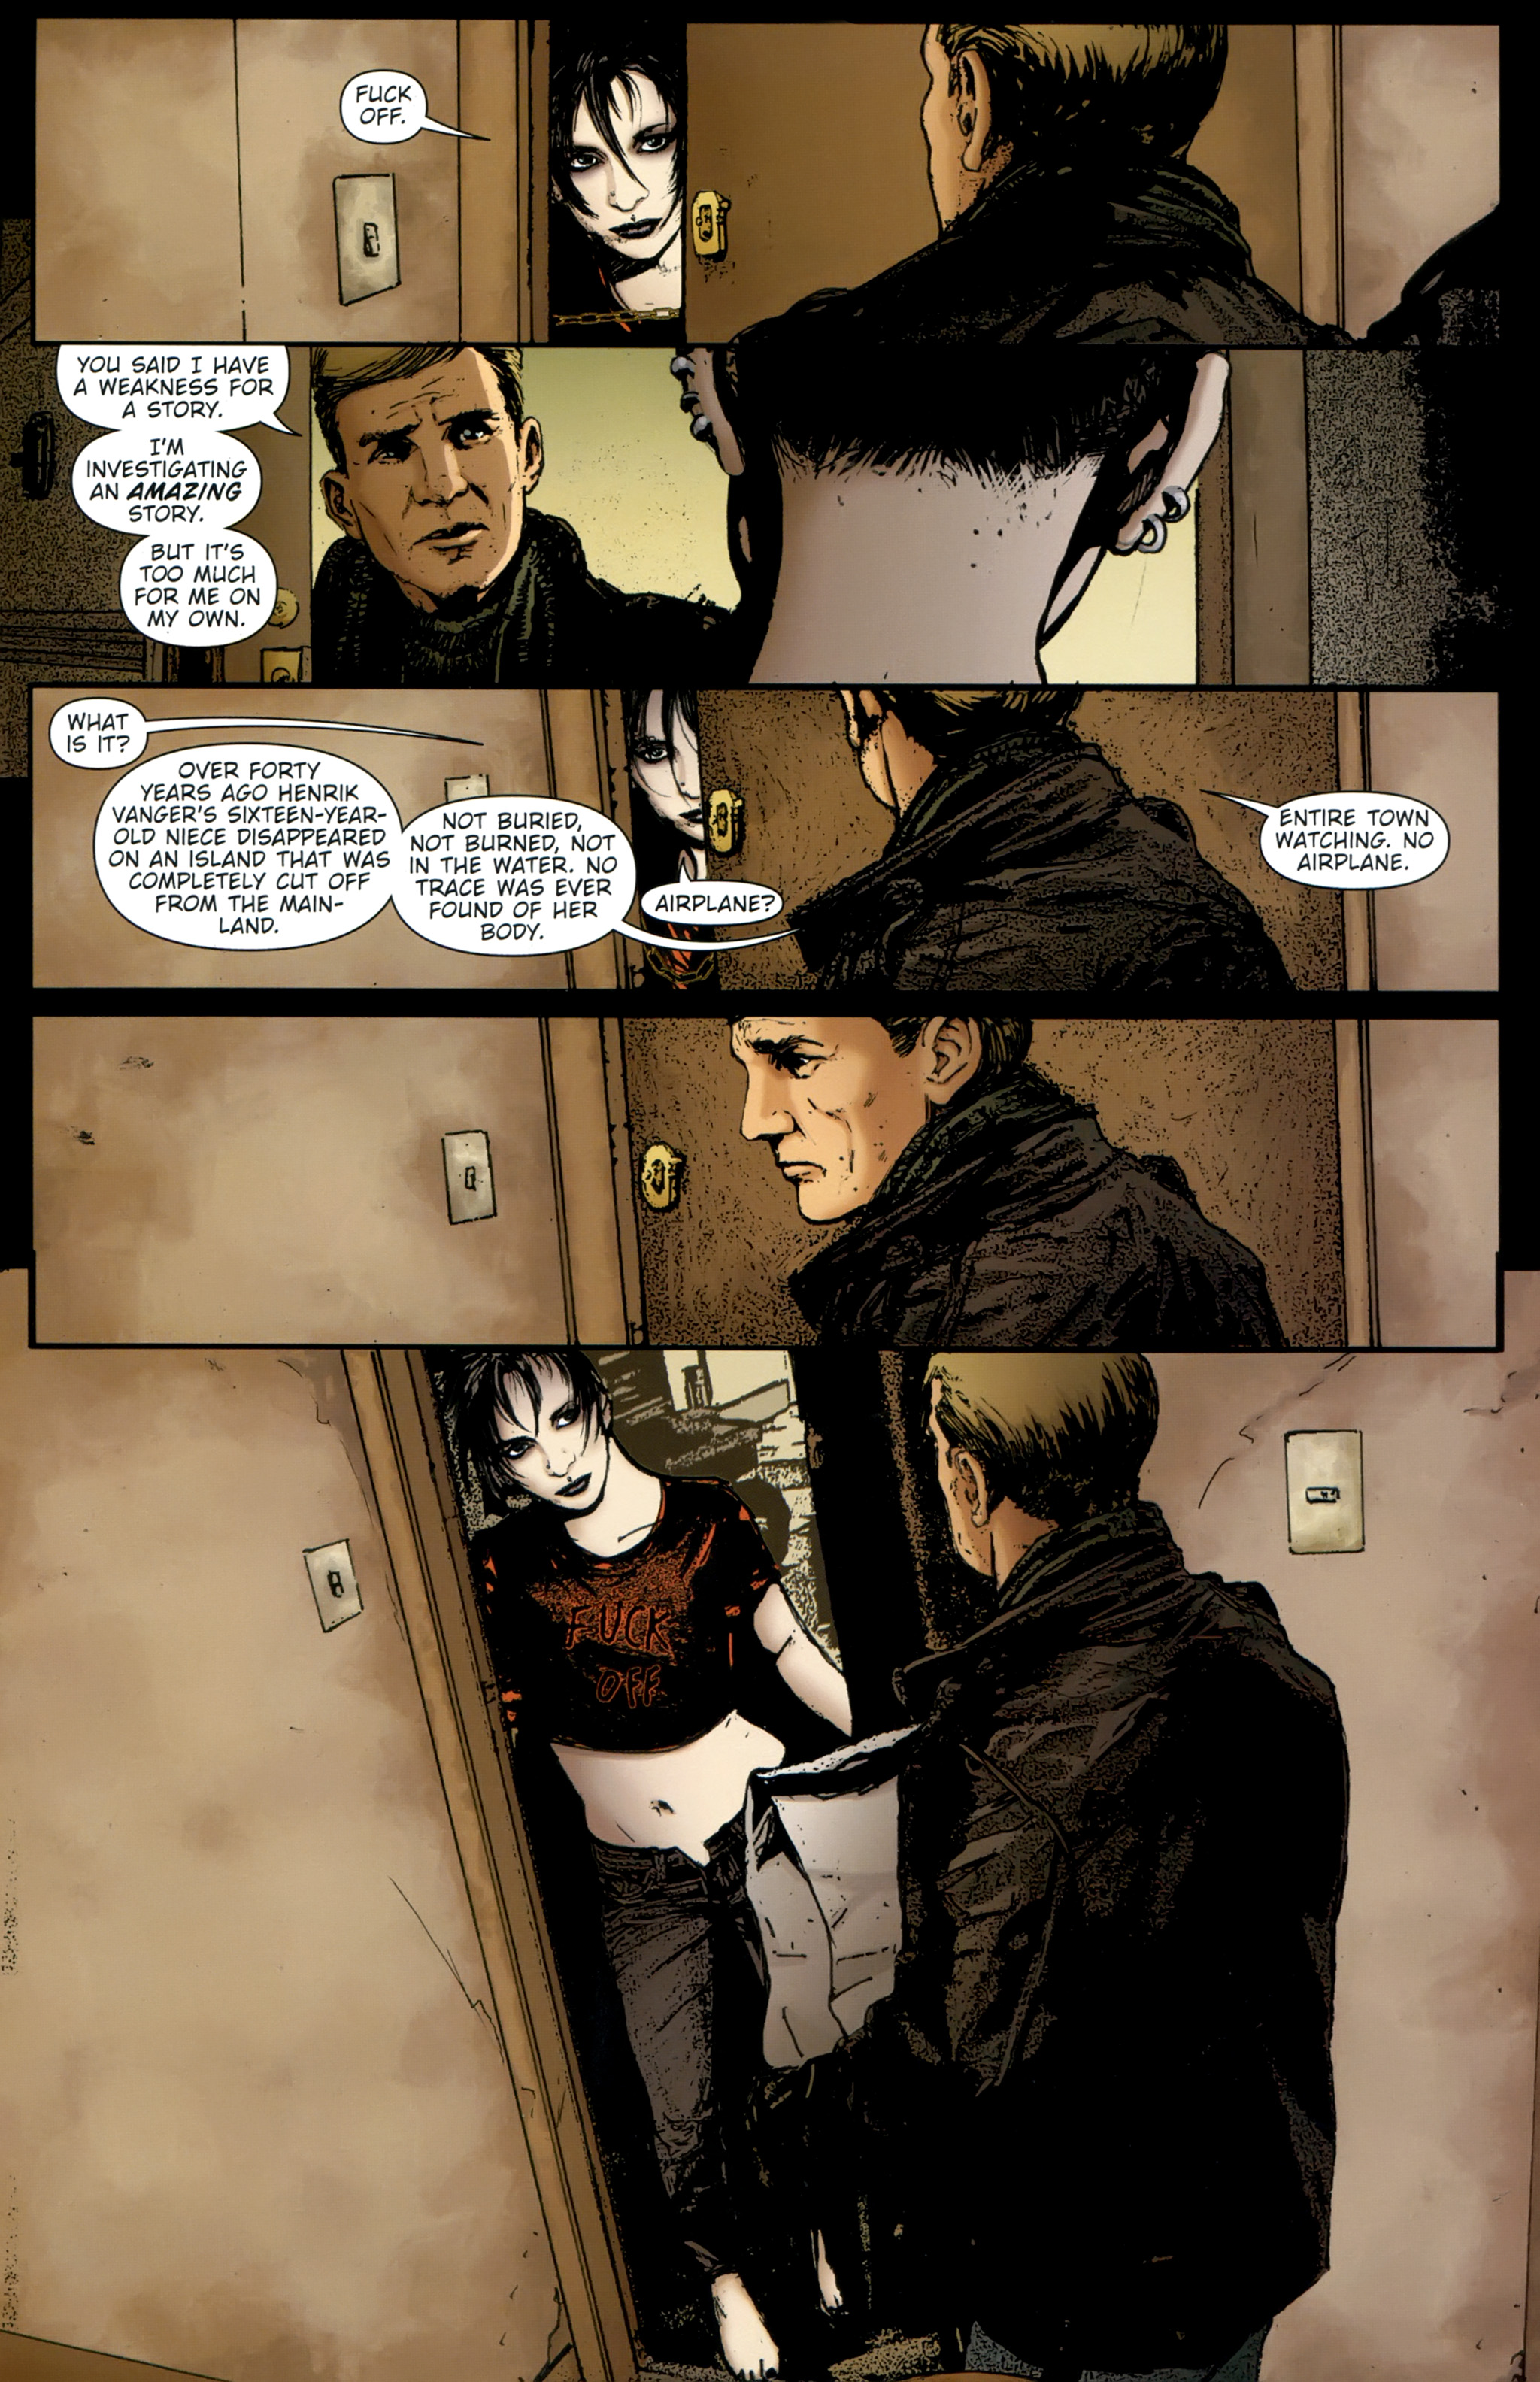 Read online The Girl With the Dragon Tattoo comic -  Issue # TPB 2 - 45